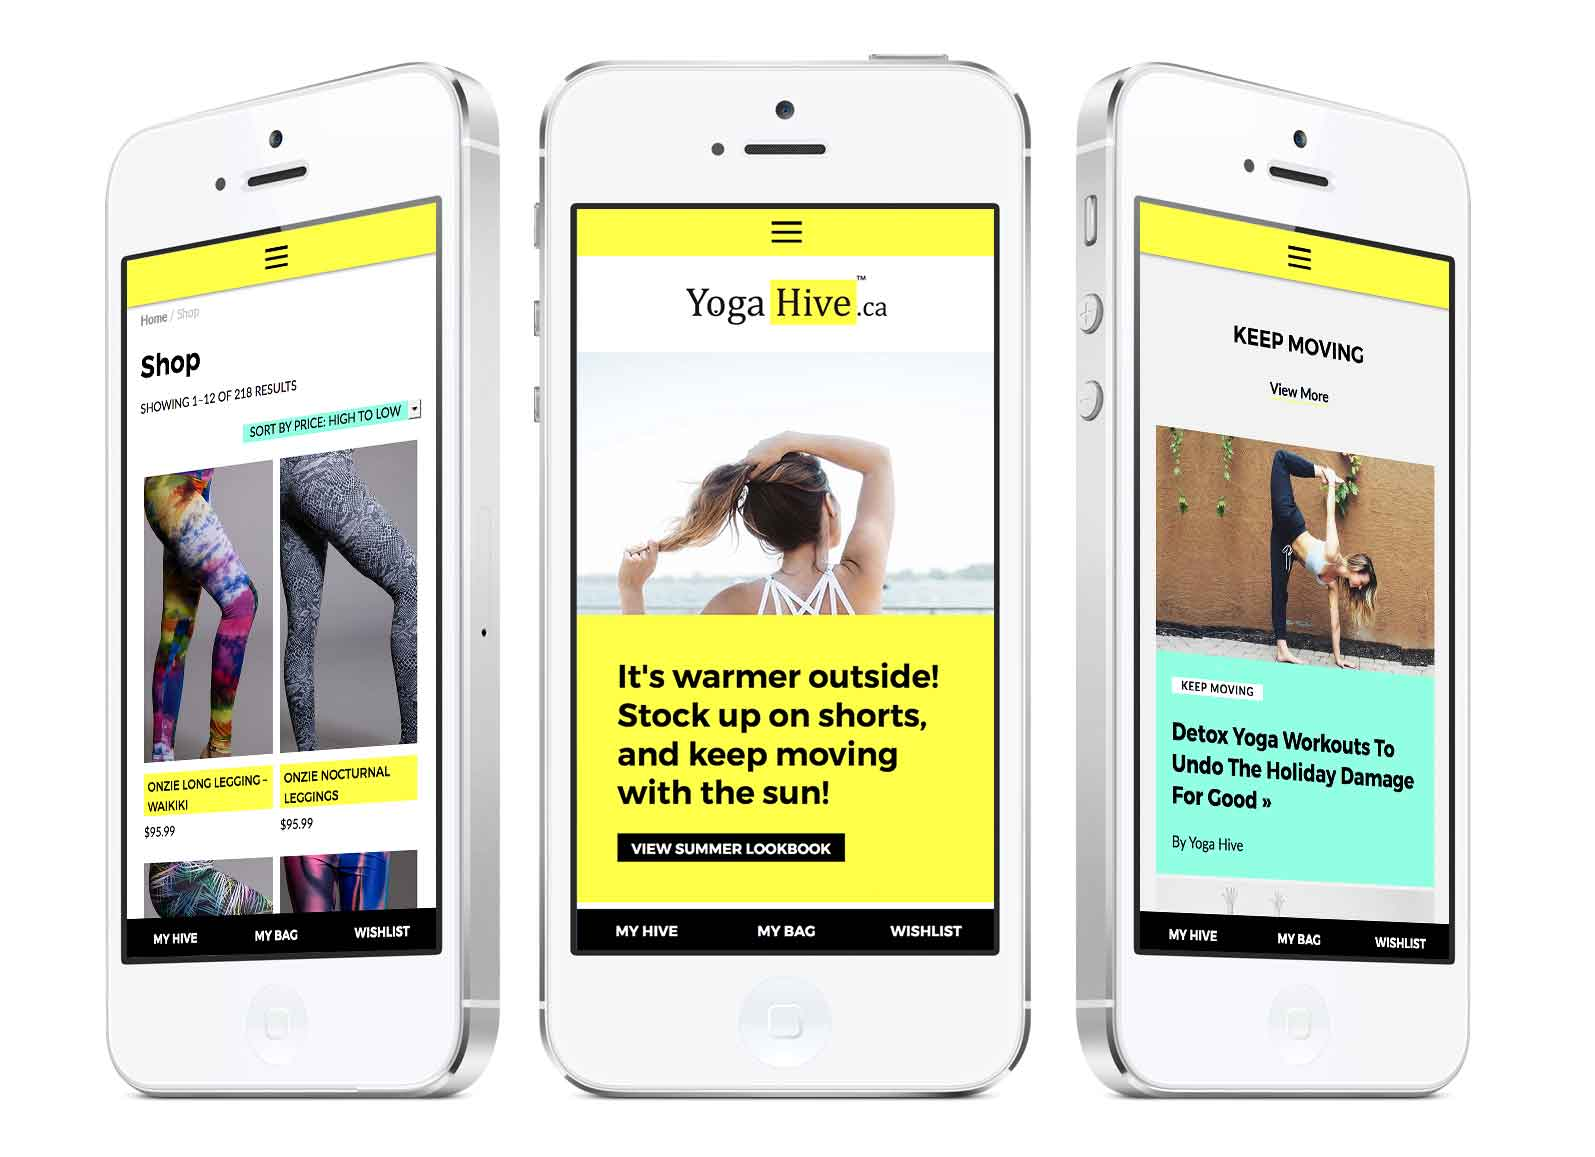 yogahive-phone - web design case study